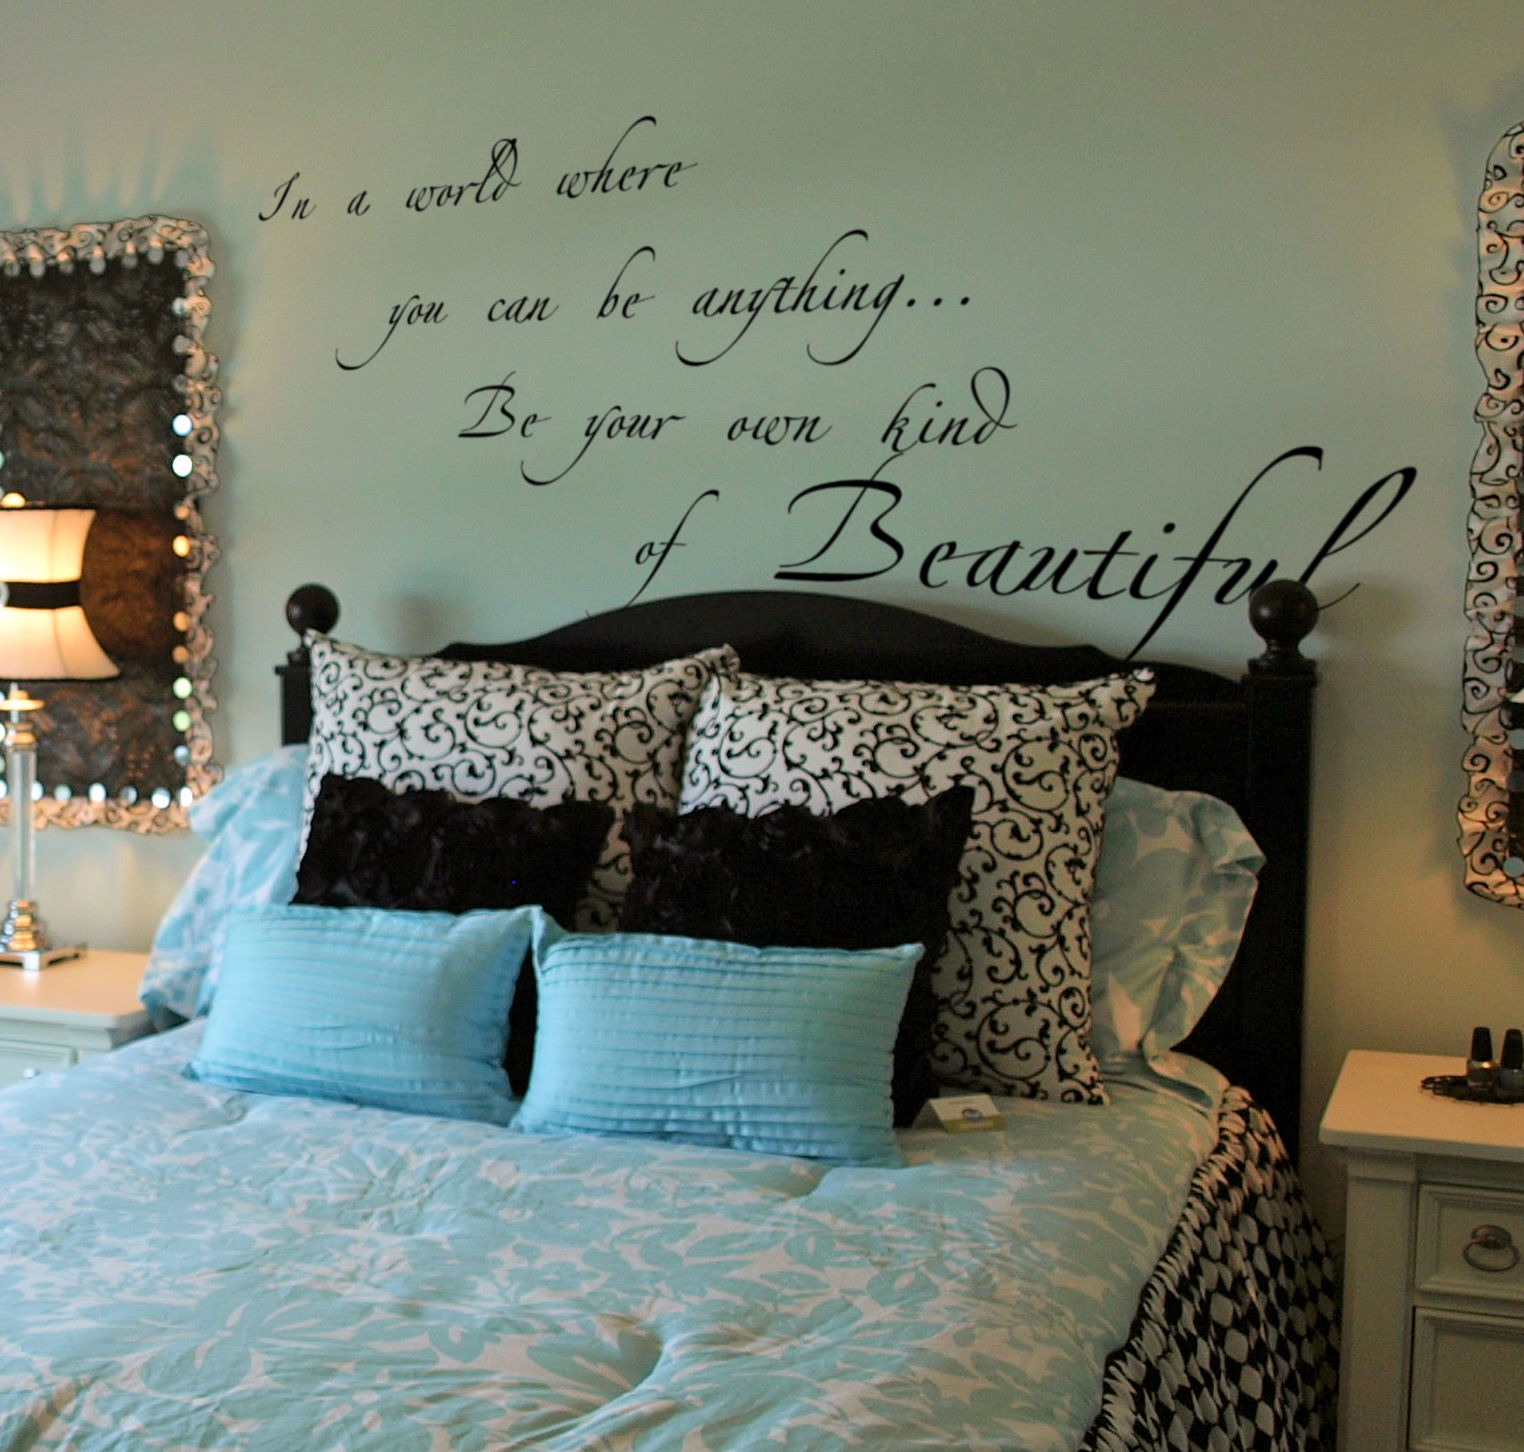 Own Kind Of Beautiful | Wall Decals